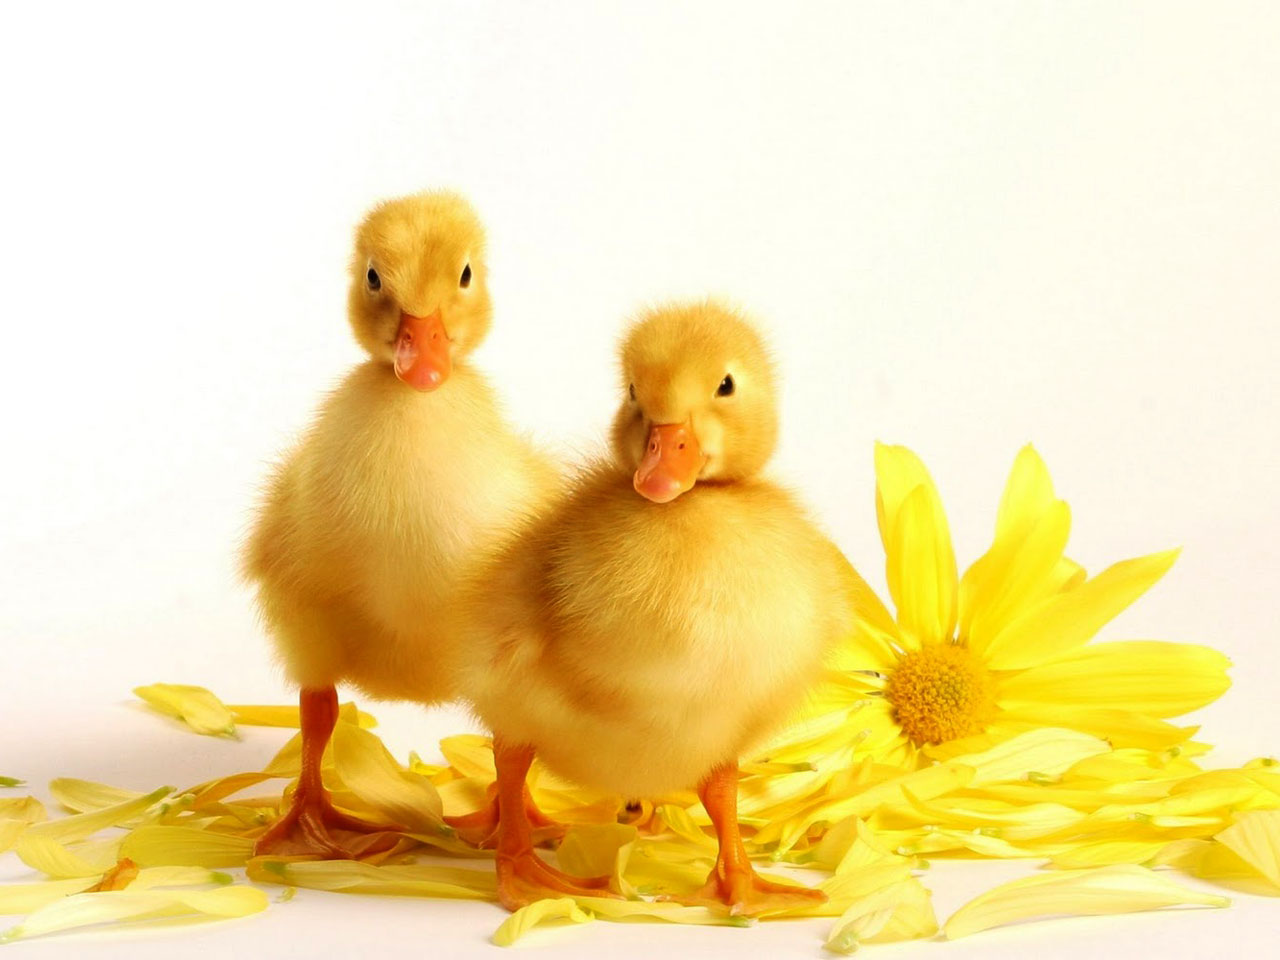 Inspirational Story – REMEMBER THE DUCK